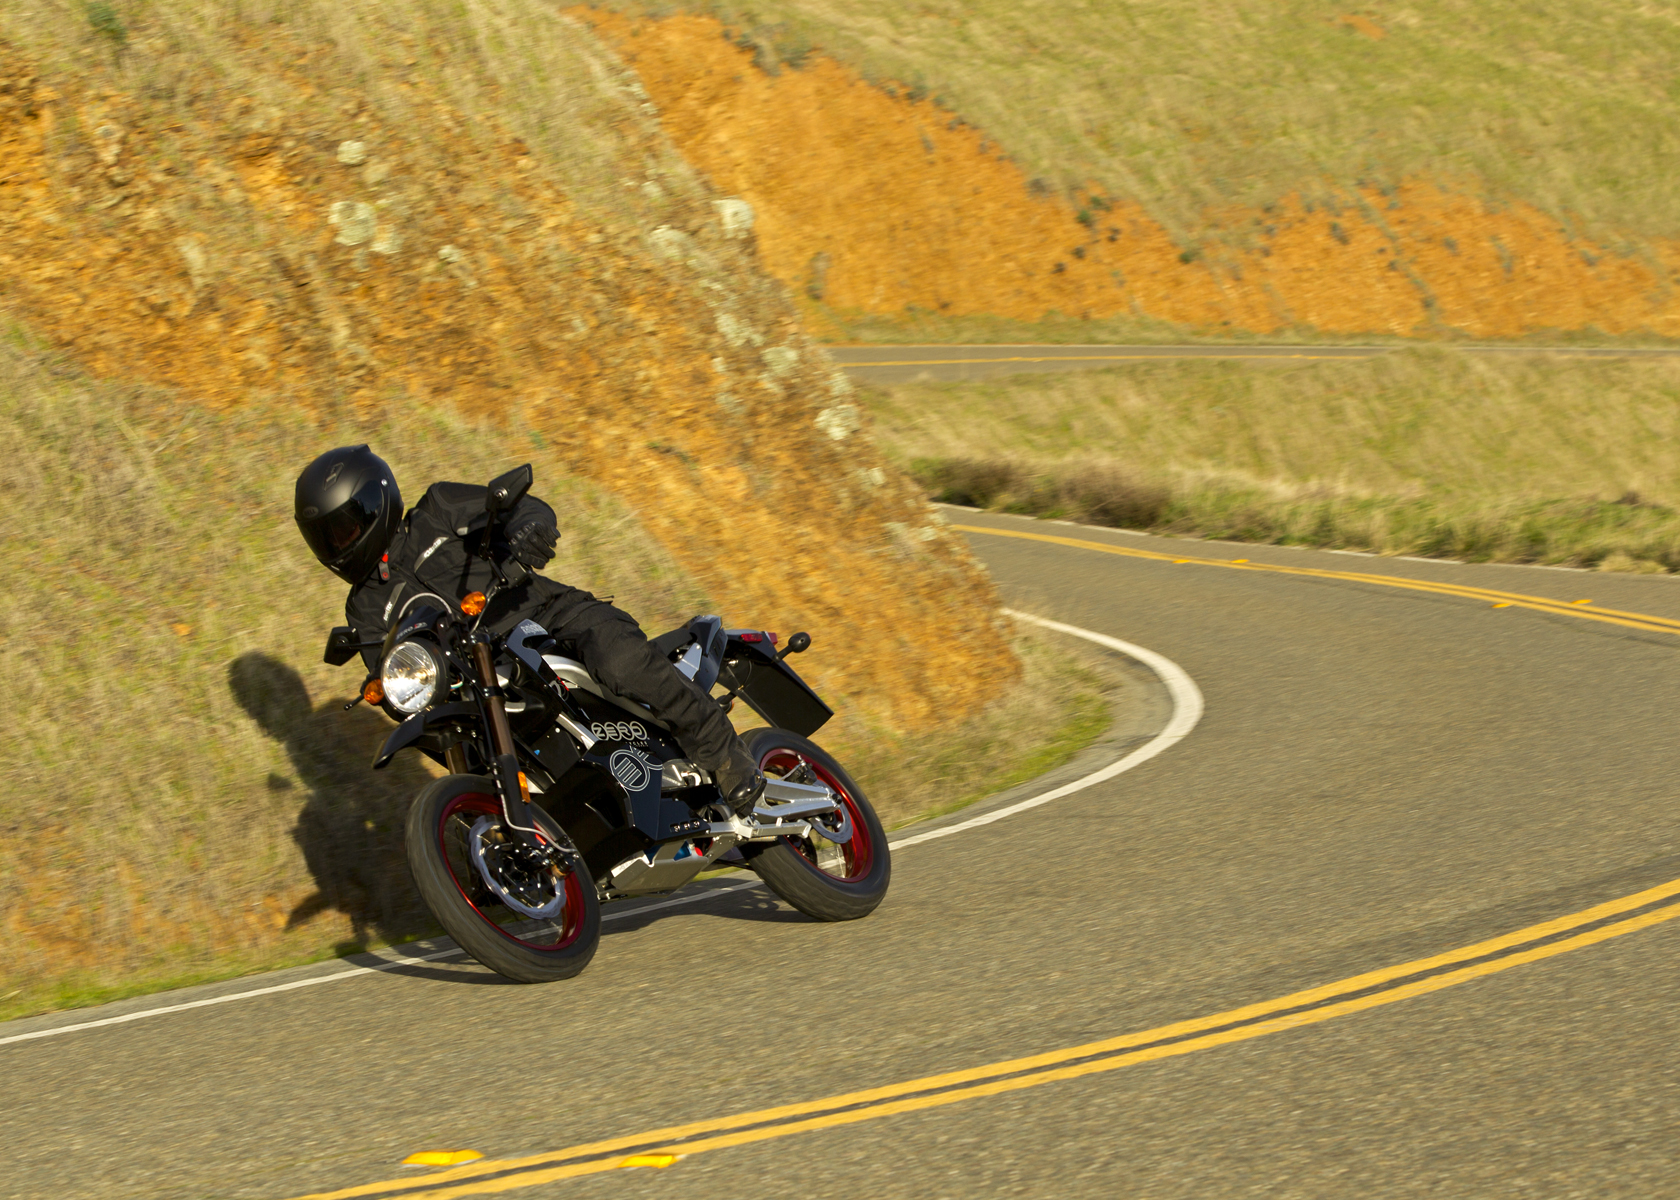 '.2011 Zero DS Electric Motorcycle: Yellow Hills, Lean Right.'